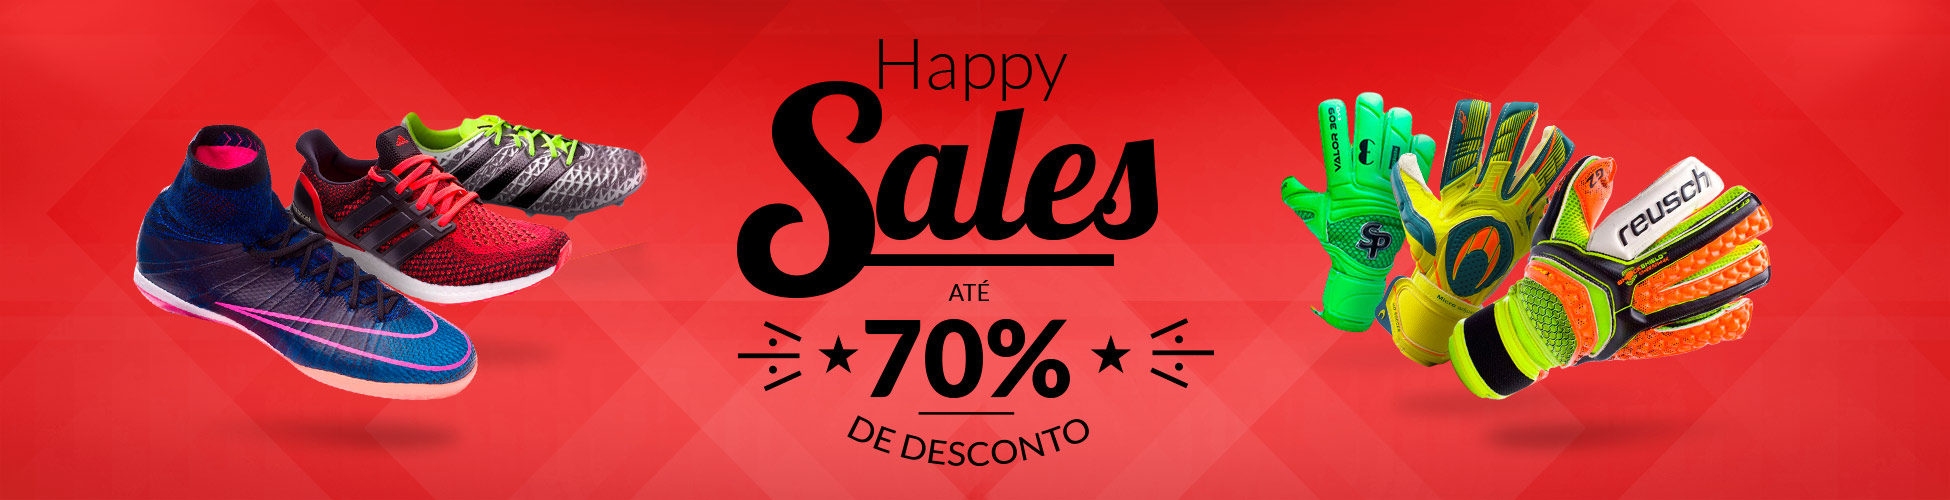 HAPPY SALES PT